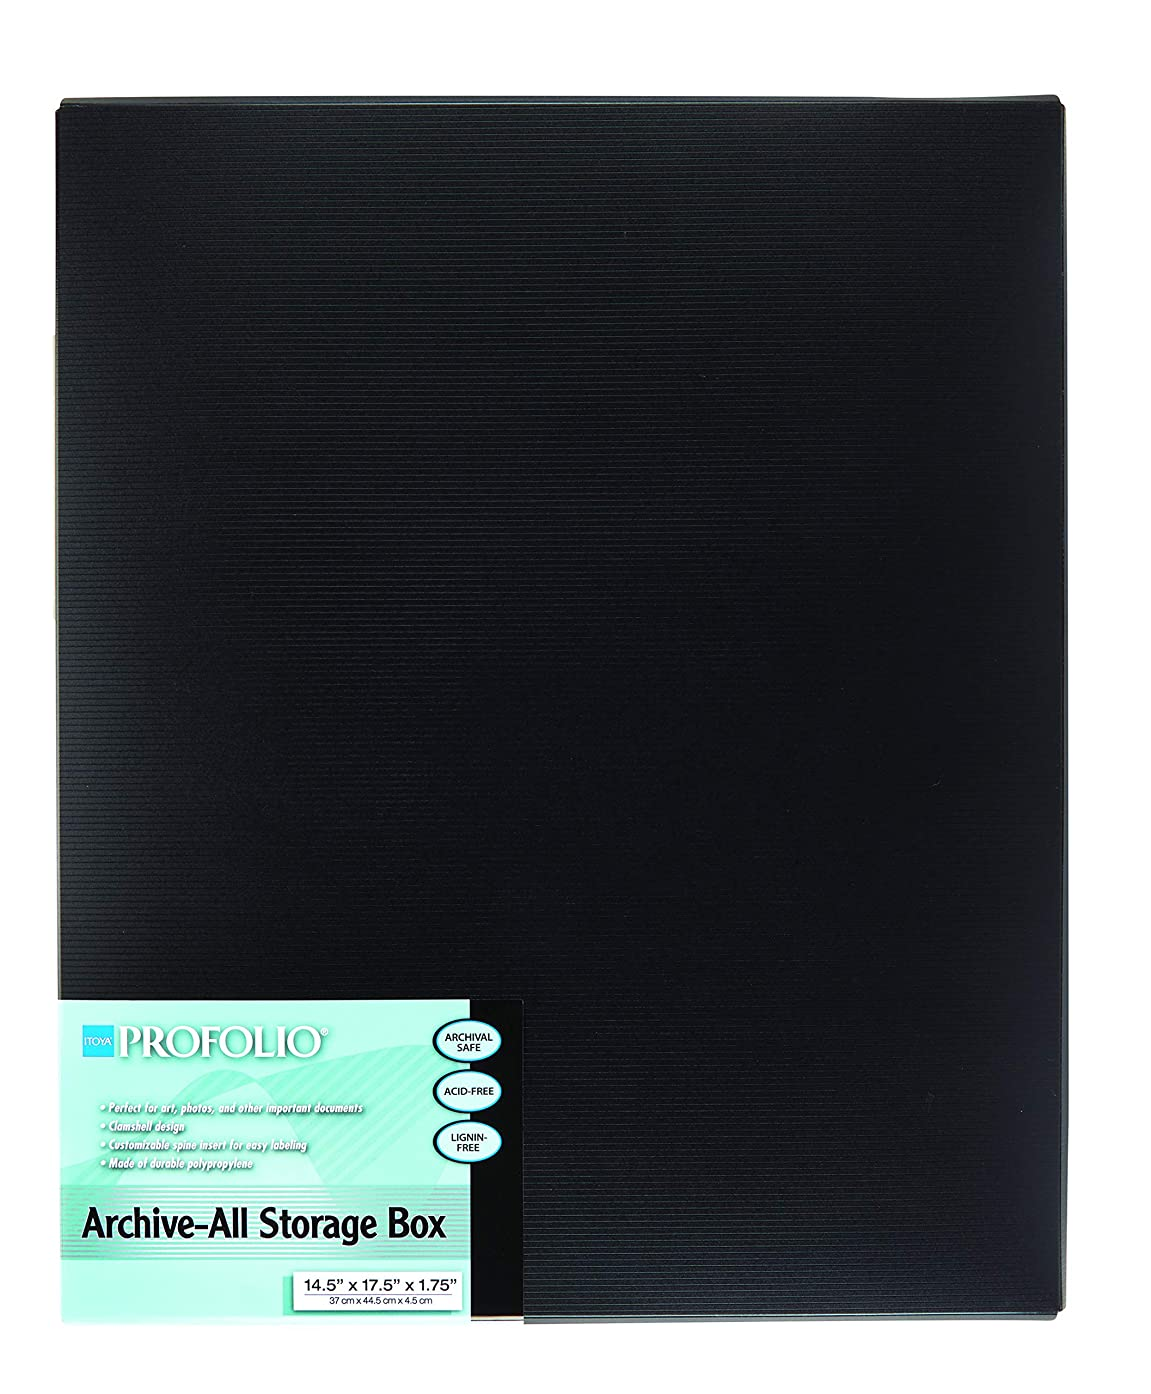 ProFolio by Itoya, Archive-All Storage Box - Black, 14.5 x 17.5 x 1.75 Inches